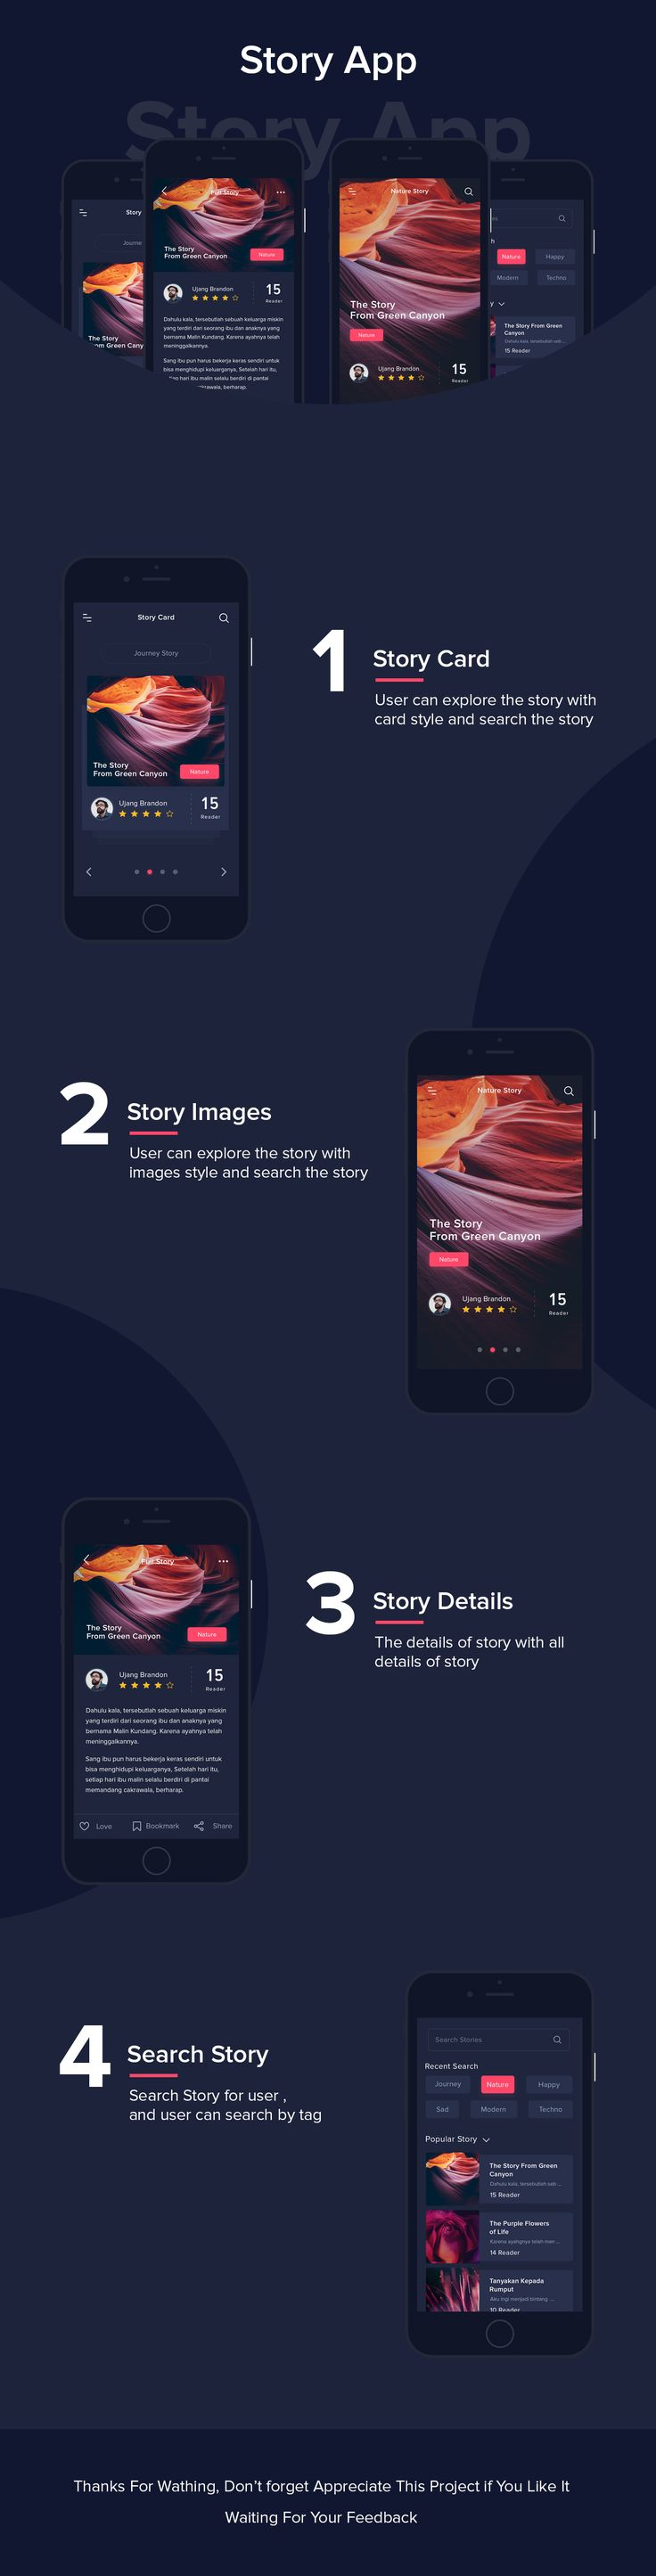 story app, with dark clean design , waiting for your feedbackdon't  forget for appreciate this project if you like itavailable for work : Rikosapto@gmail.com